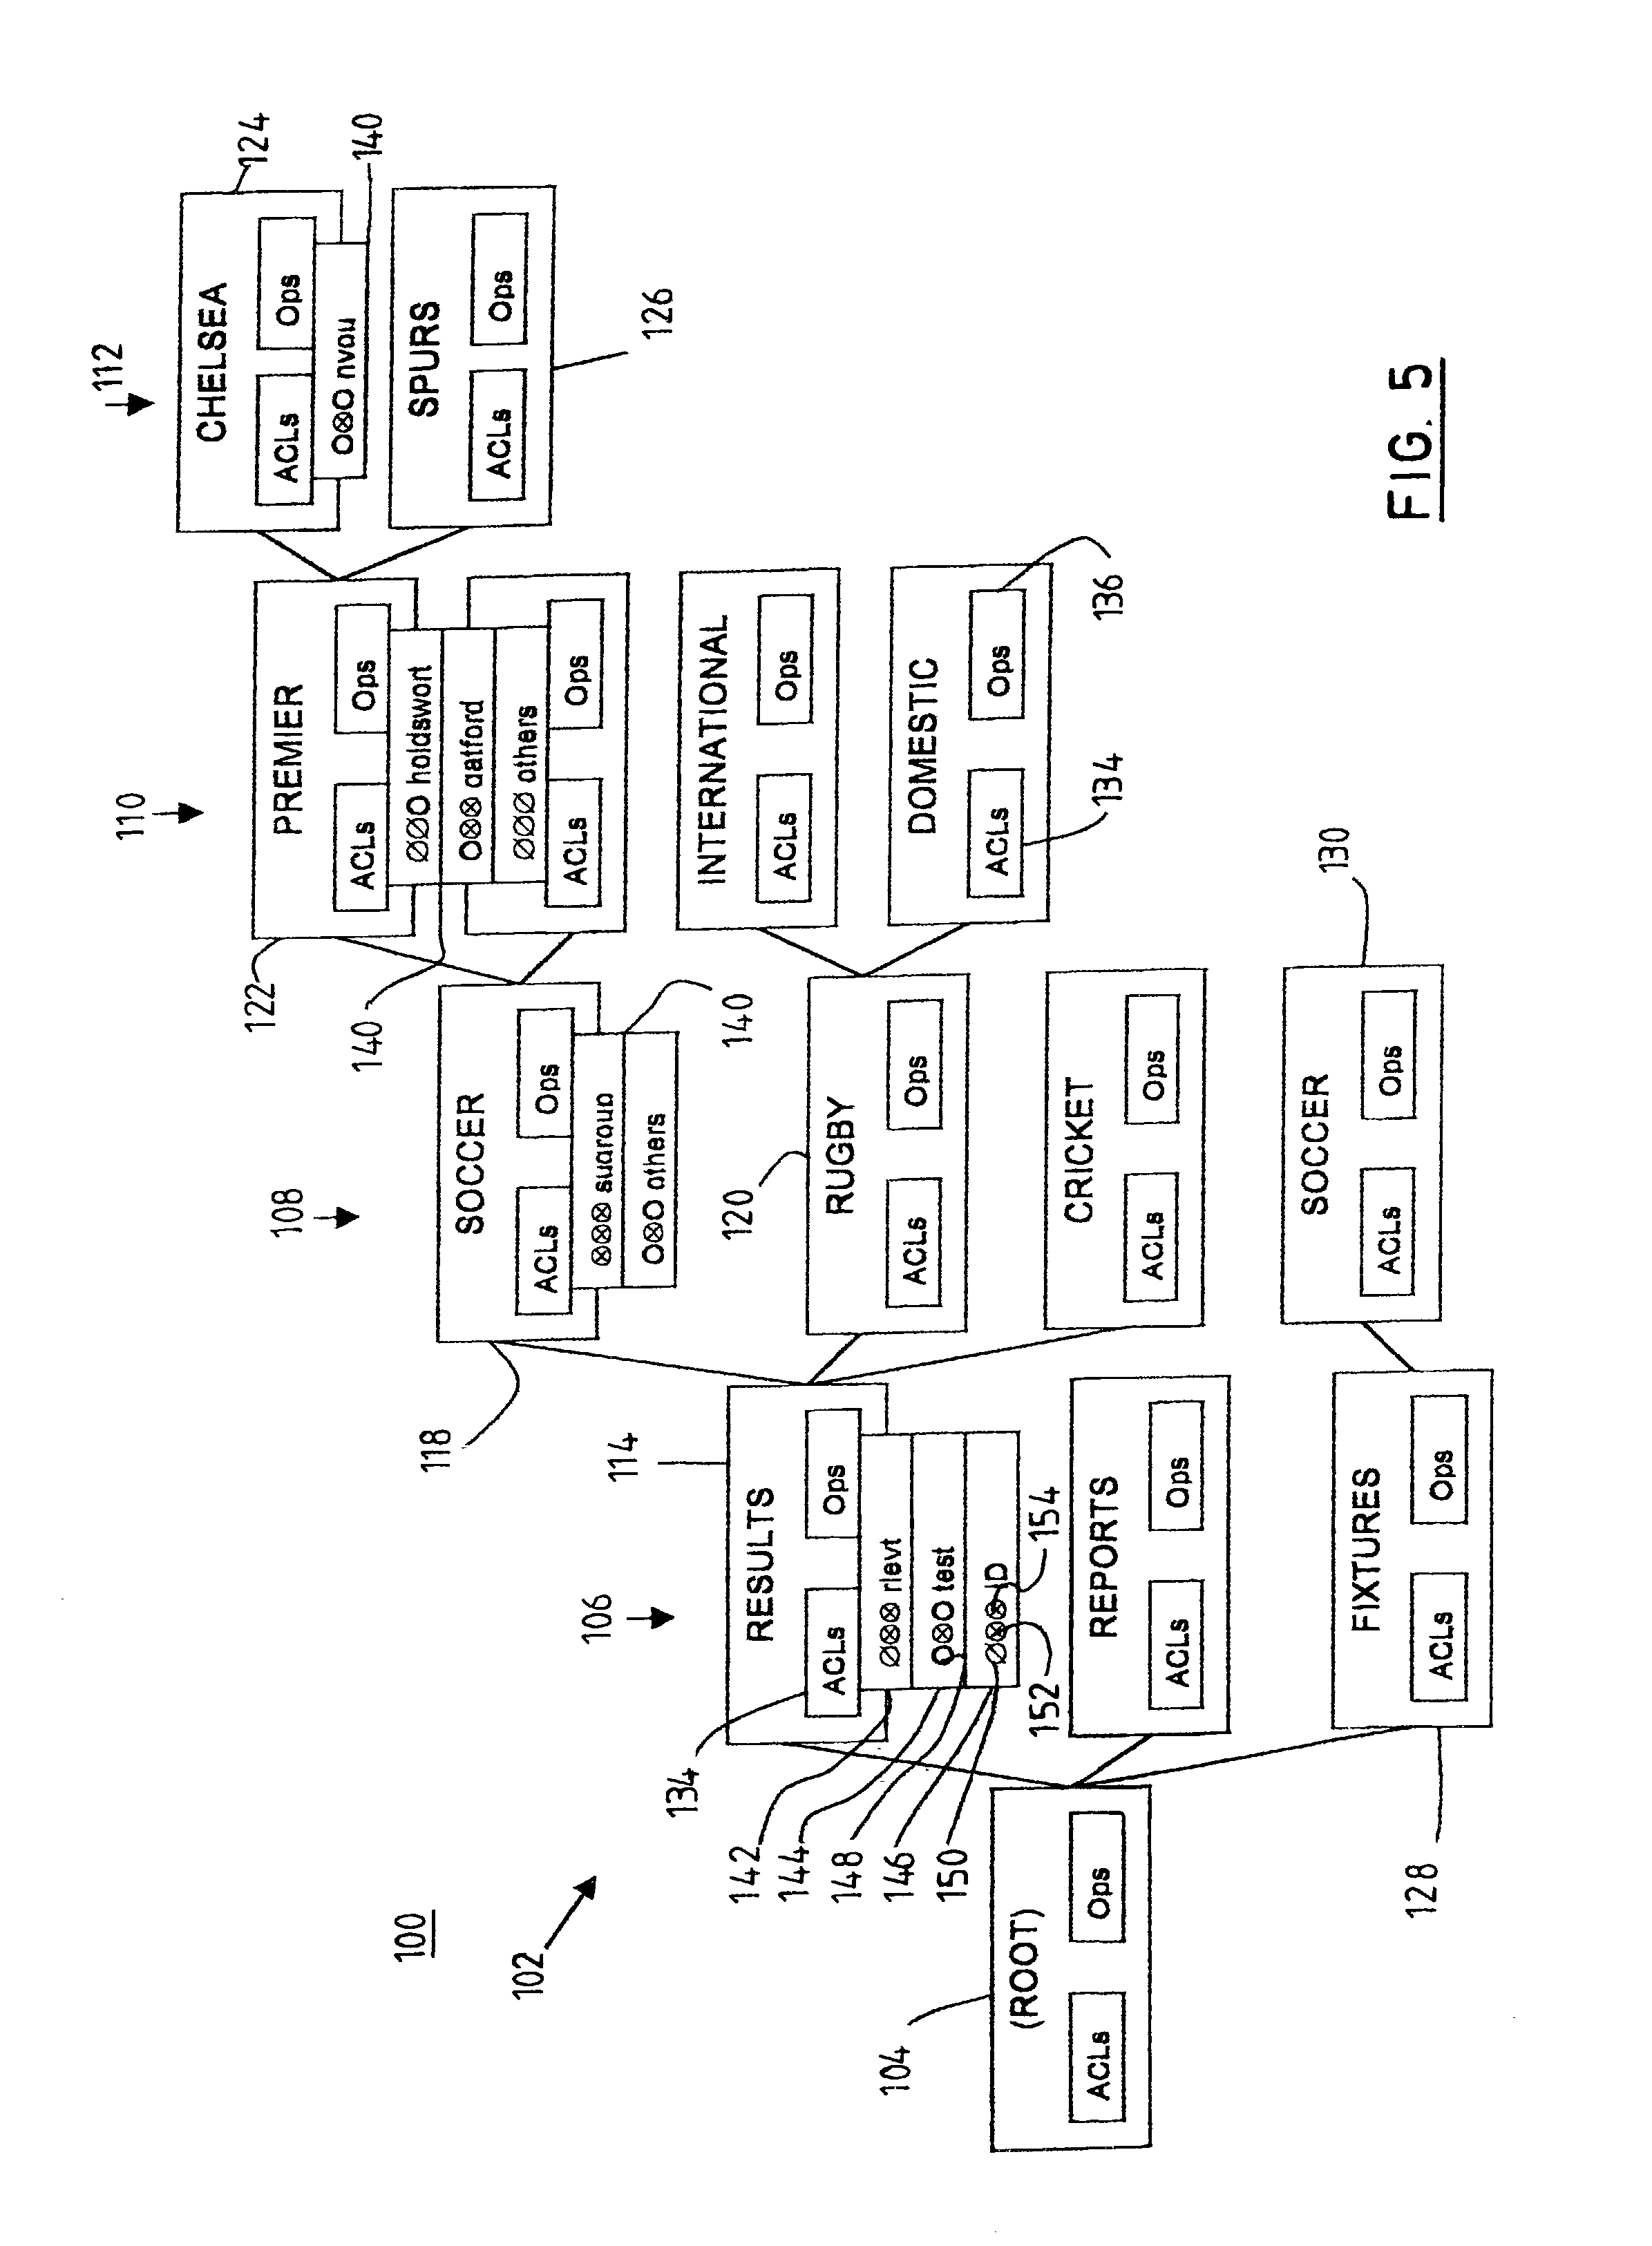 US7917940B2 - Inheritance of controls within a hierarchy of data processing system resources         - Google PatentsFamily